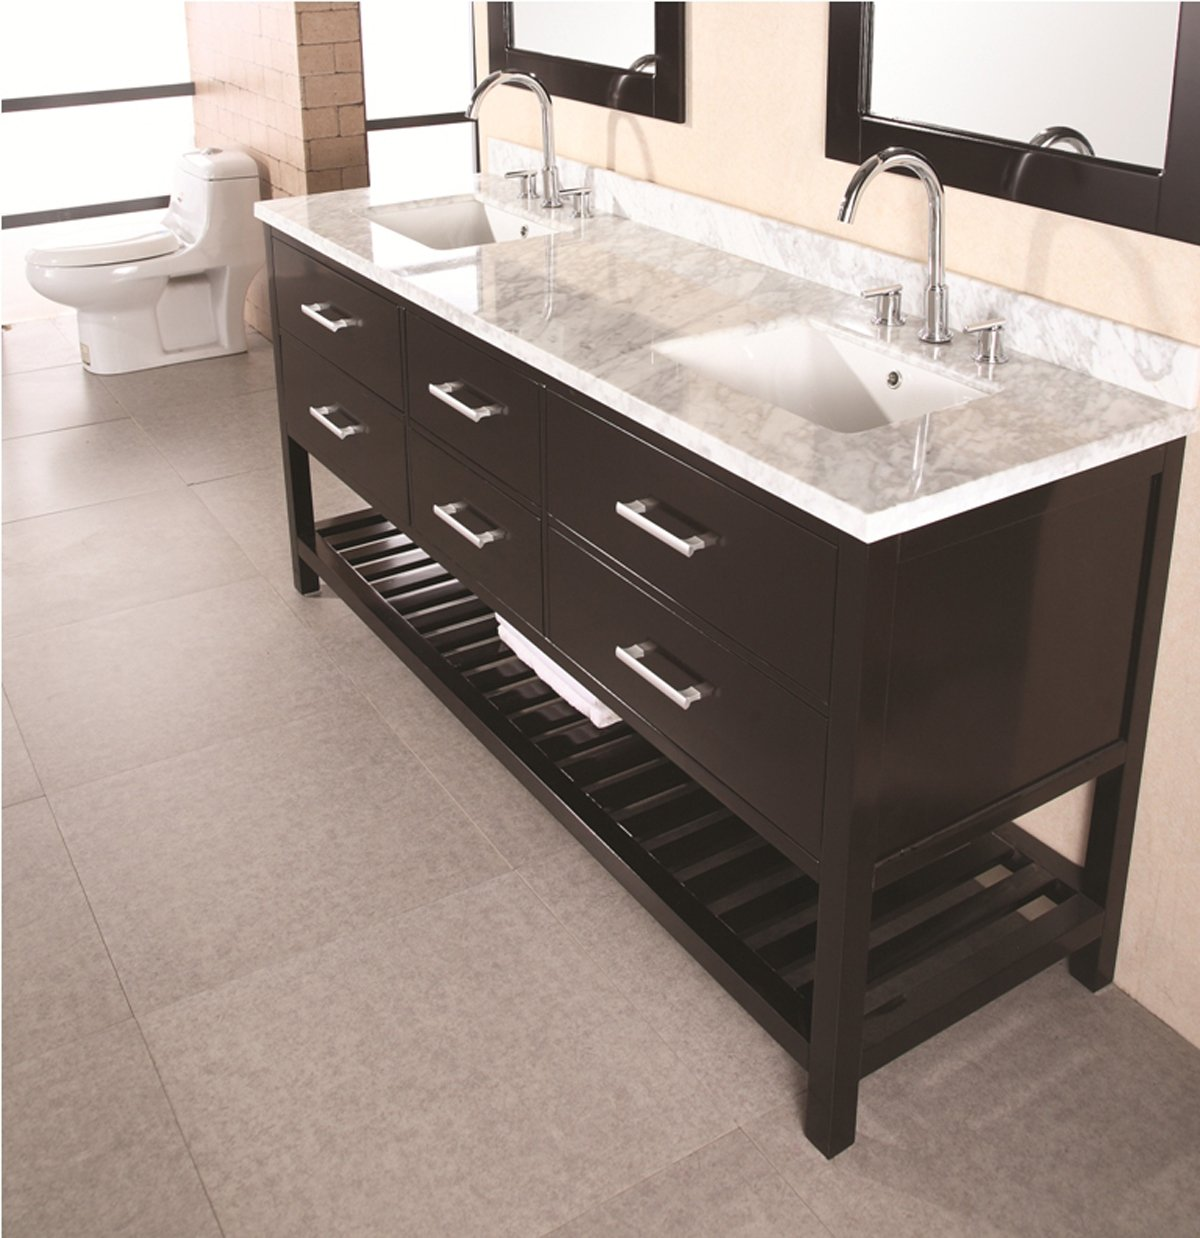 bathroom vanity 72 double sink. Design Element DEC077B London 72 Inch Double Sink Vanity Set  Mirrors Amazon com